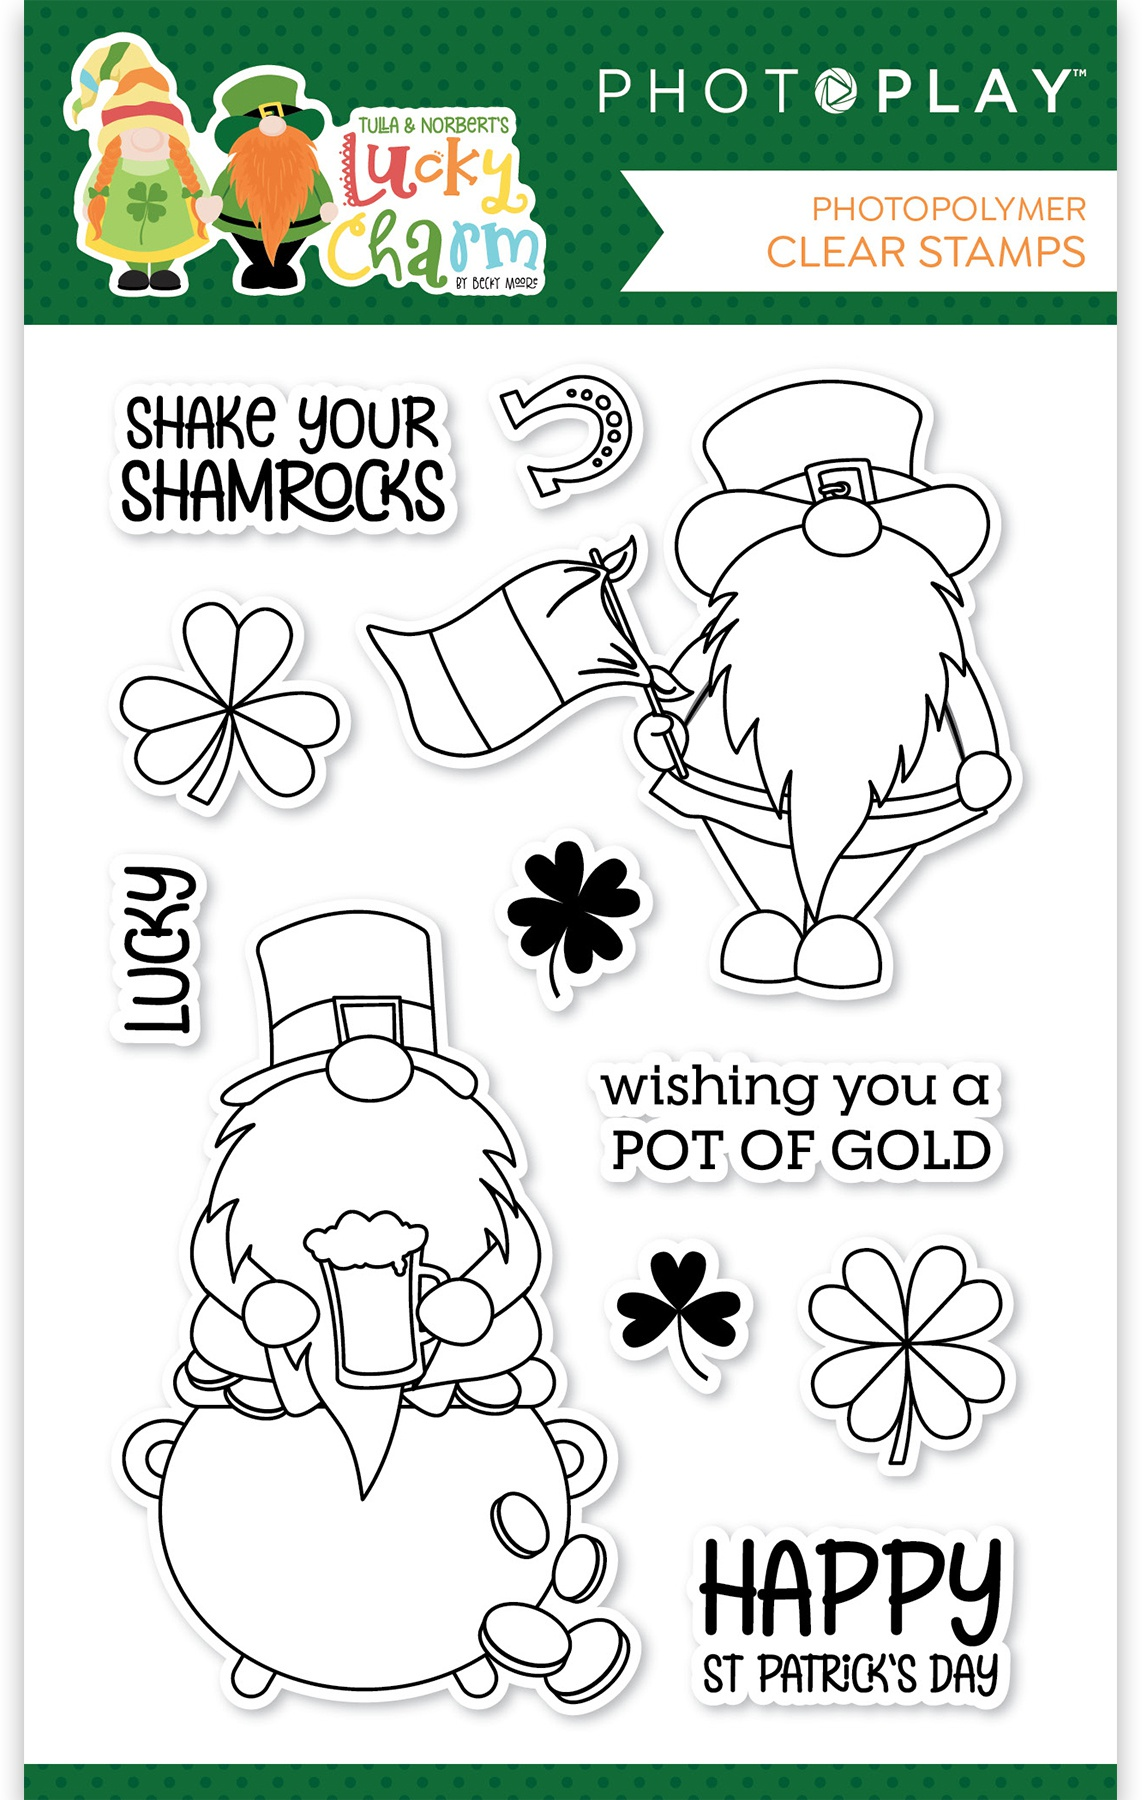 PhotoPlay Photopolymer Stamp-Tulla & Norbert's Lucky Charm